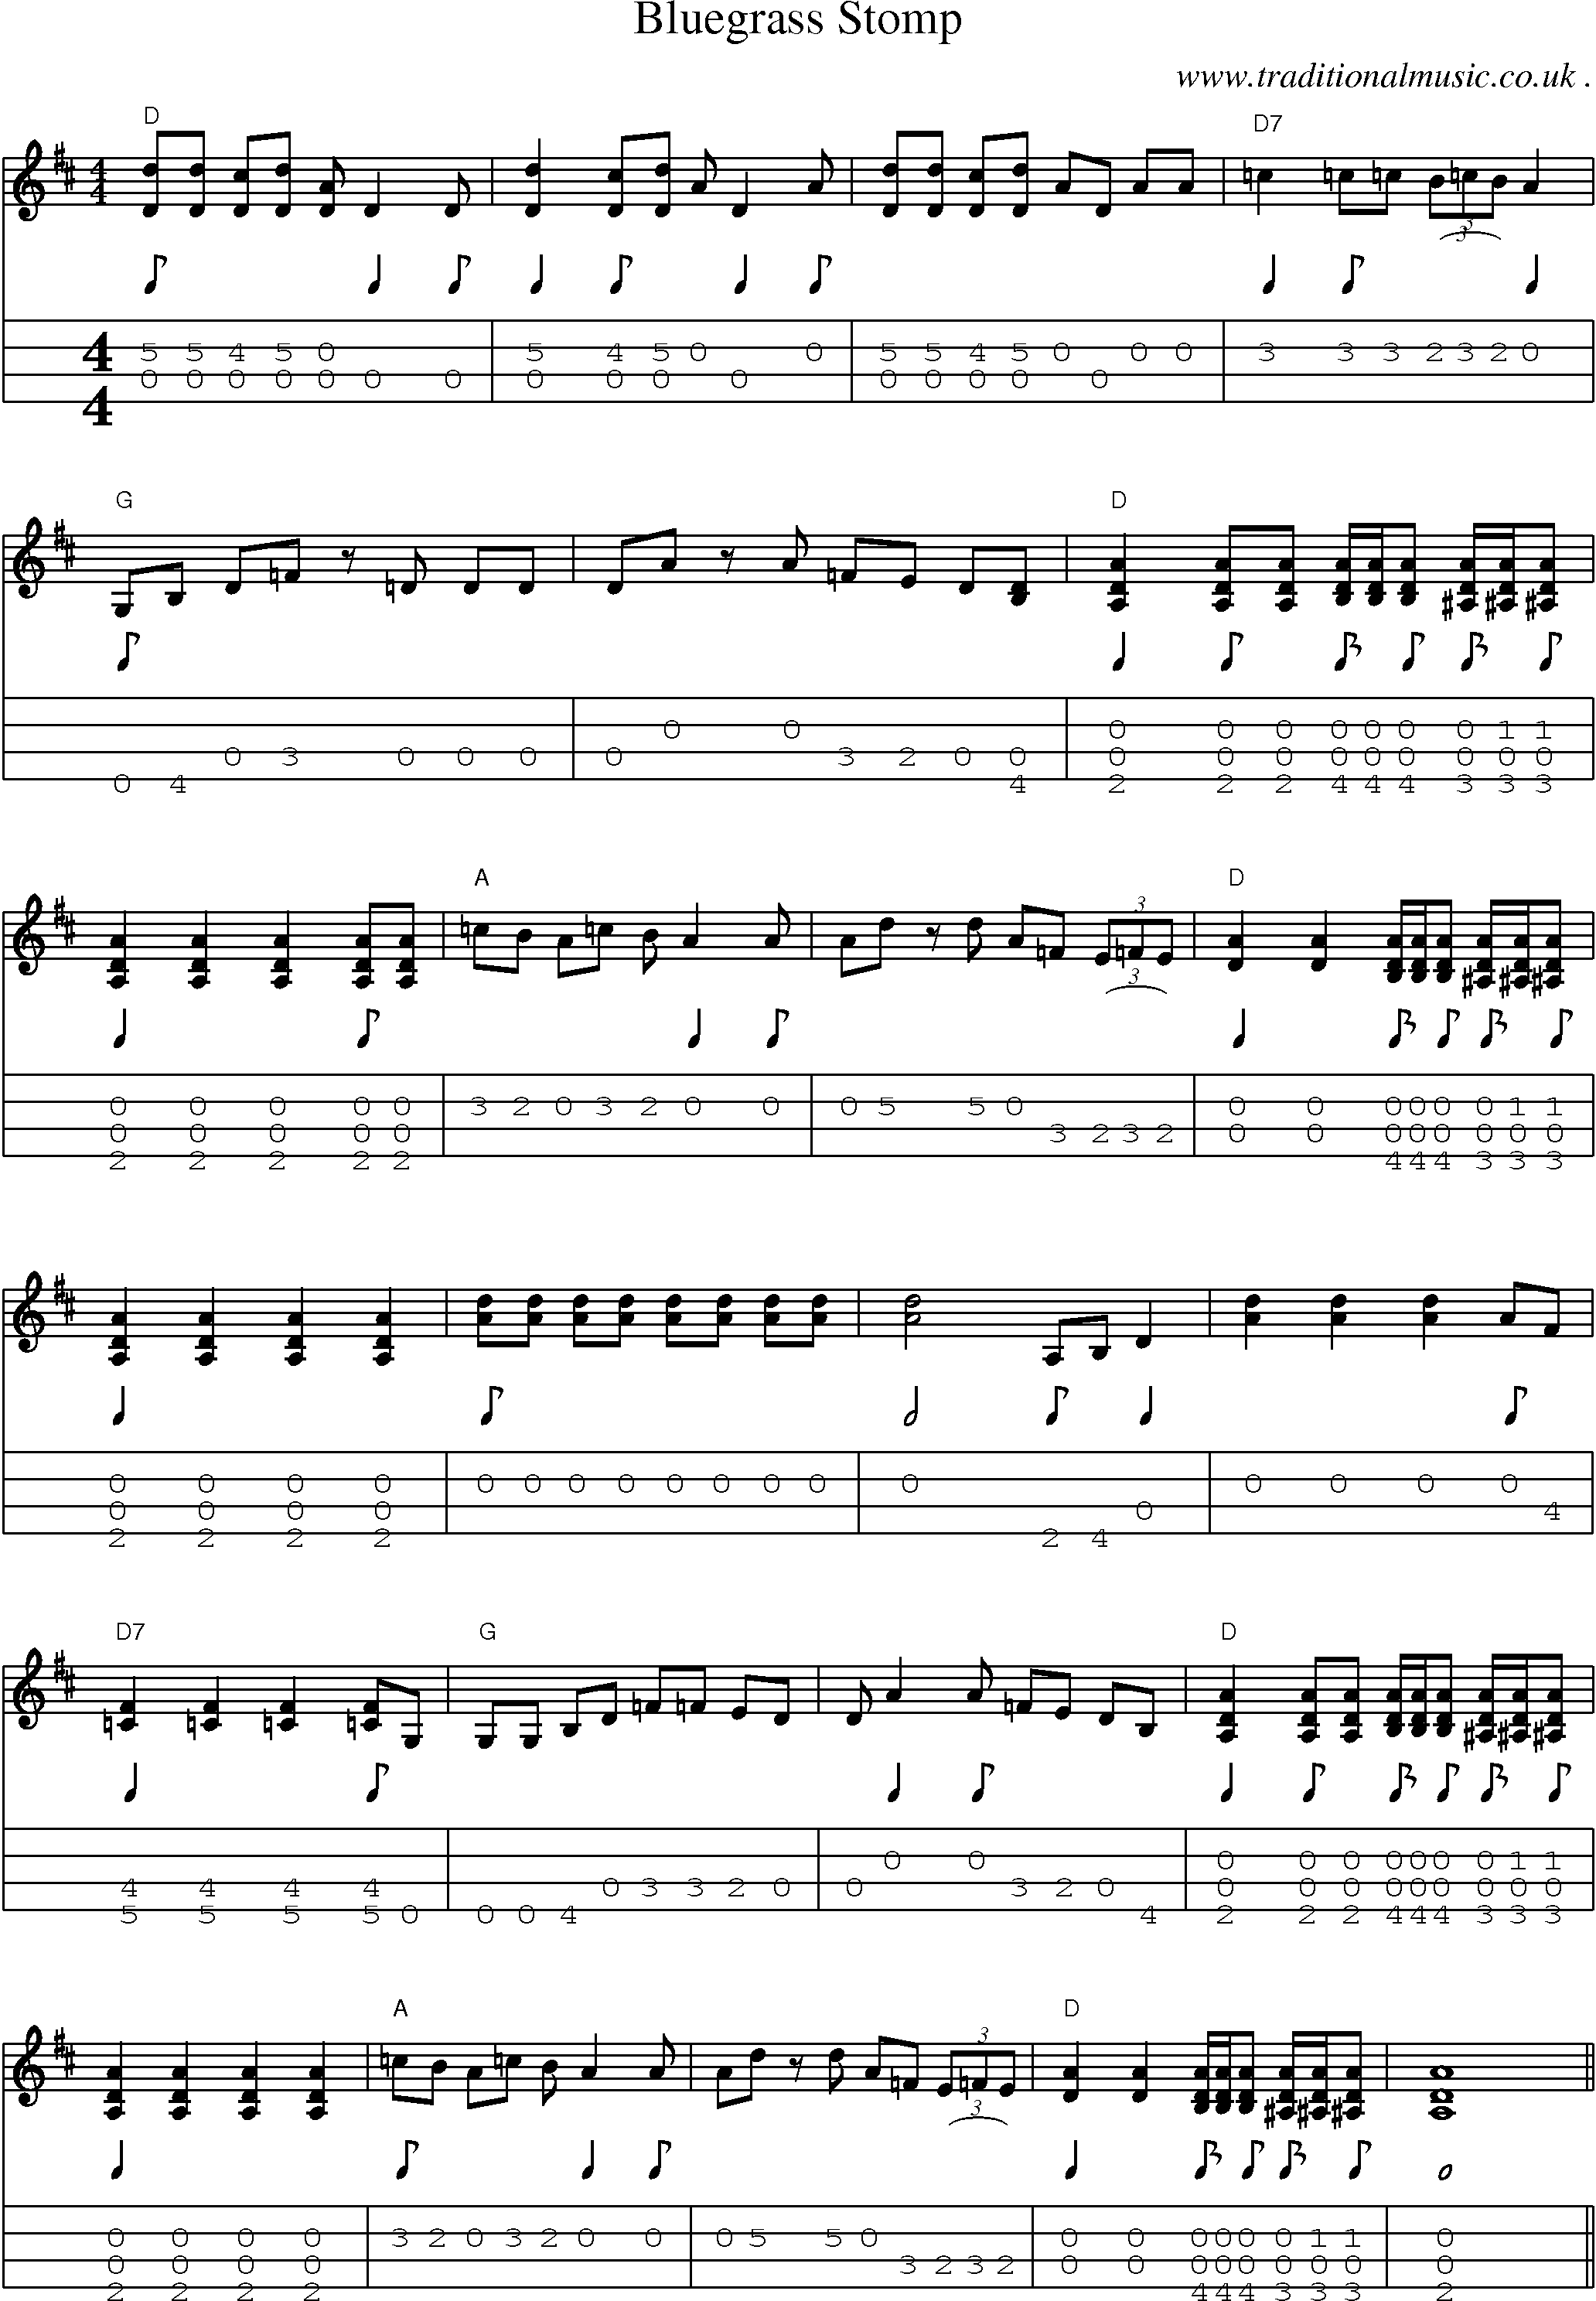 American old time music scores and tabs for mandolin bluegrass american old time music scores and tabs for mandolin bluegrass stomp hexwebz Image collections